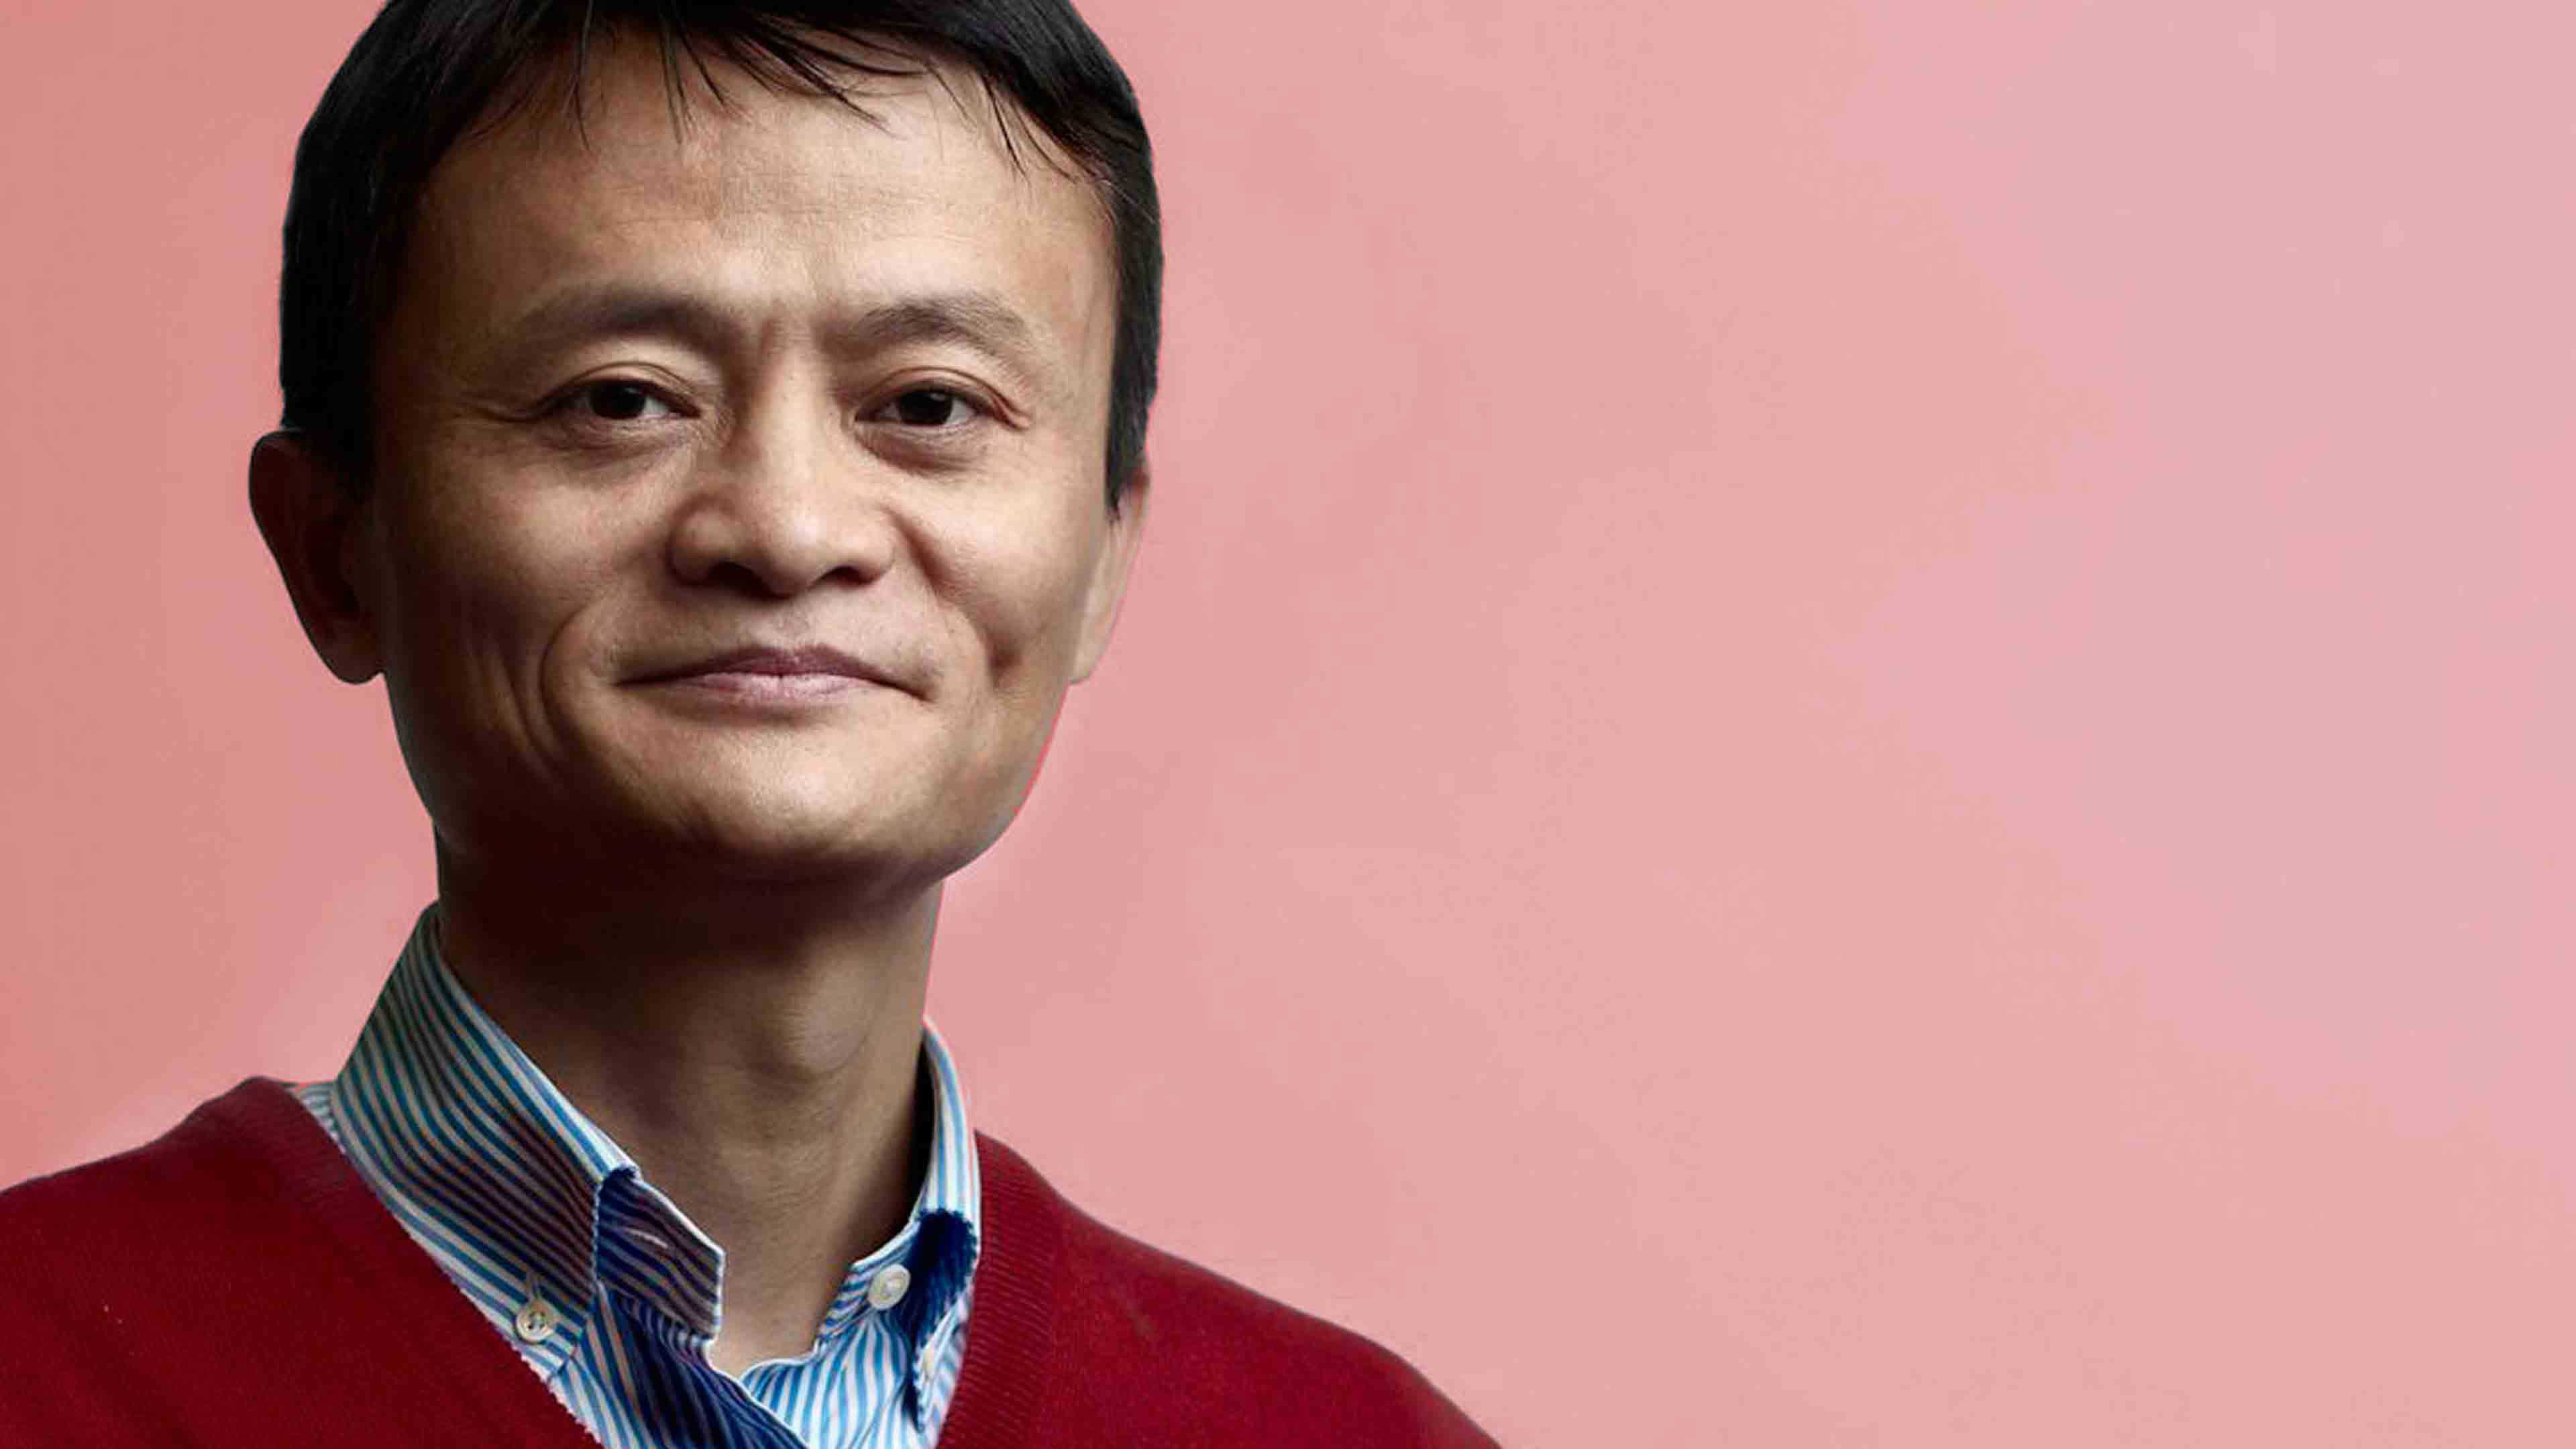 Best Inspirational Quotes Wallpapers Hd Alibaba Founder Jack Ma Quotes For Entrepreneurs Insbright